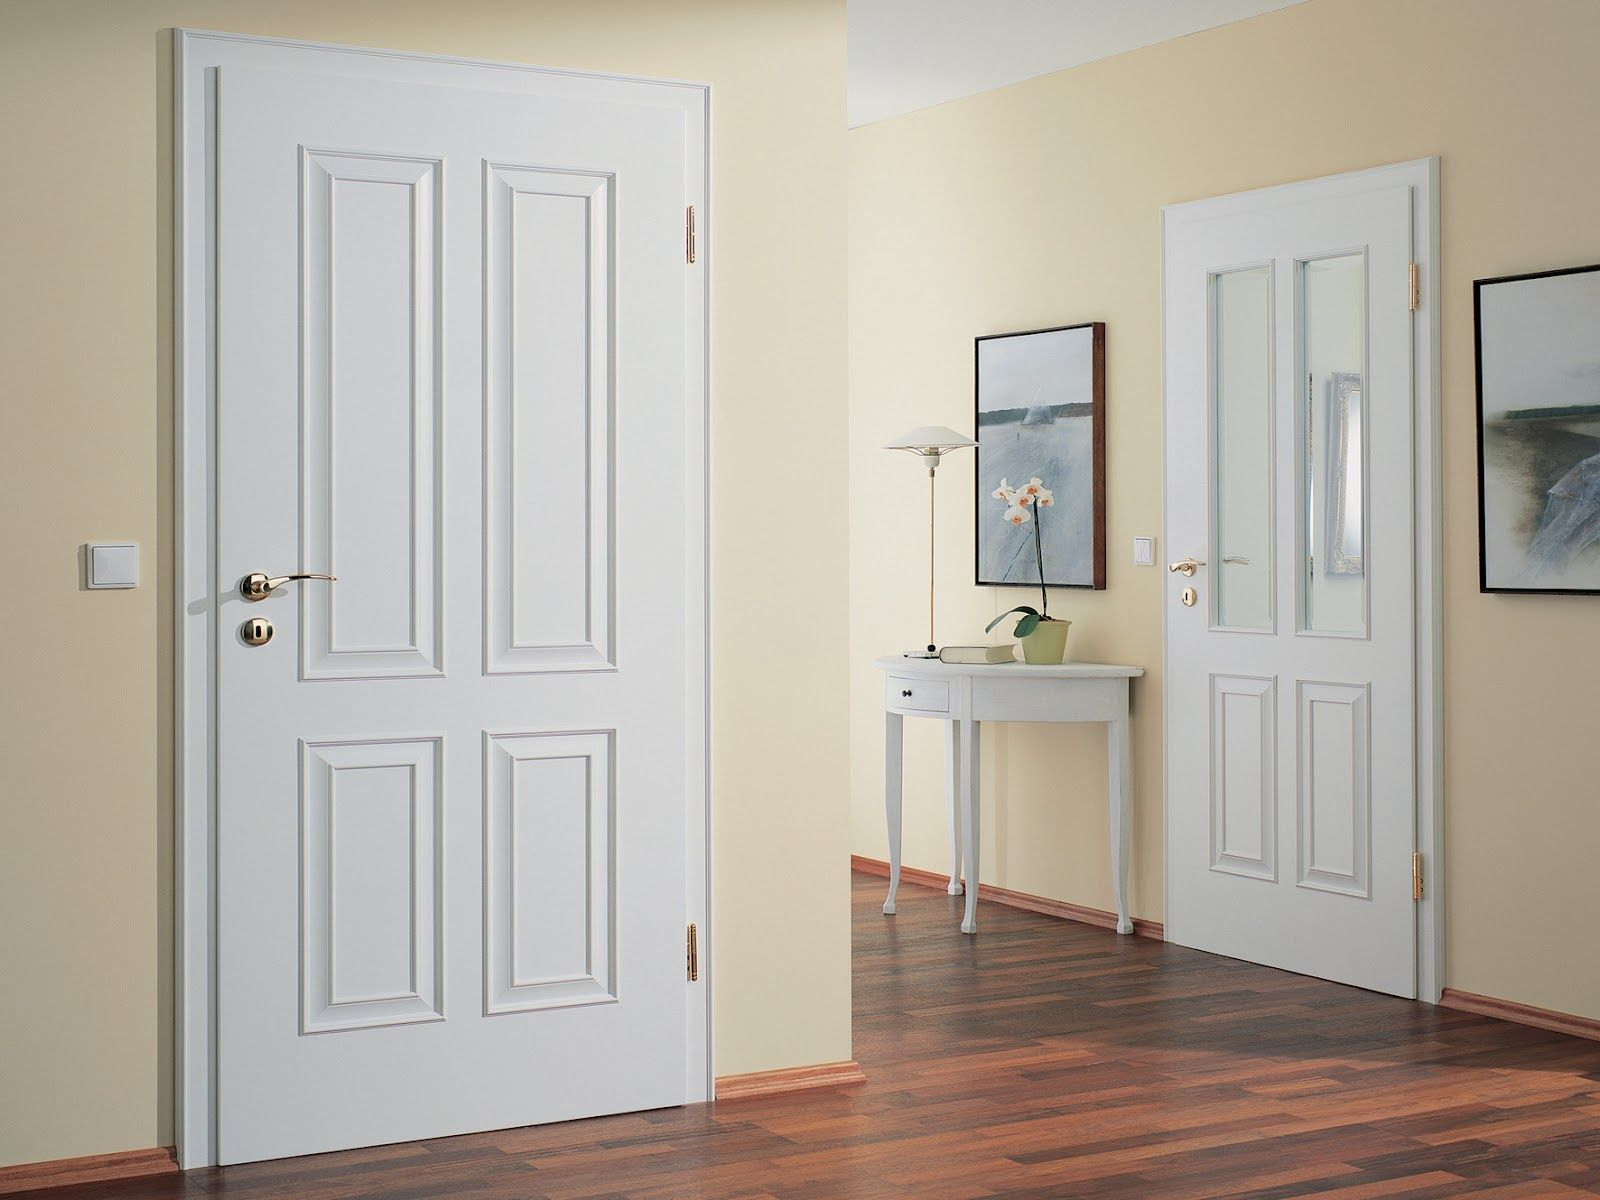 locks delightful security l org door design doors interior handballtunisie